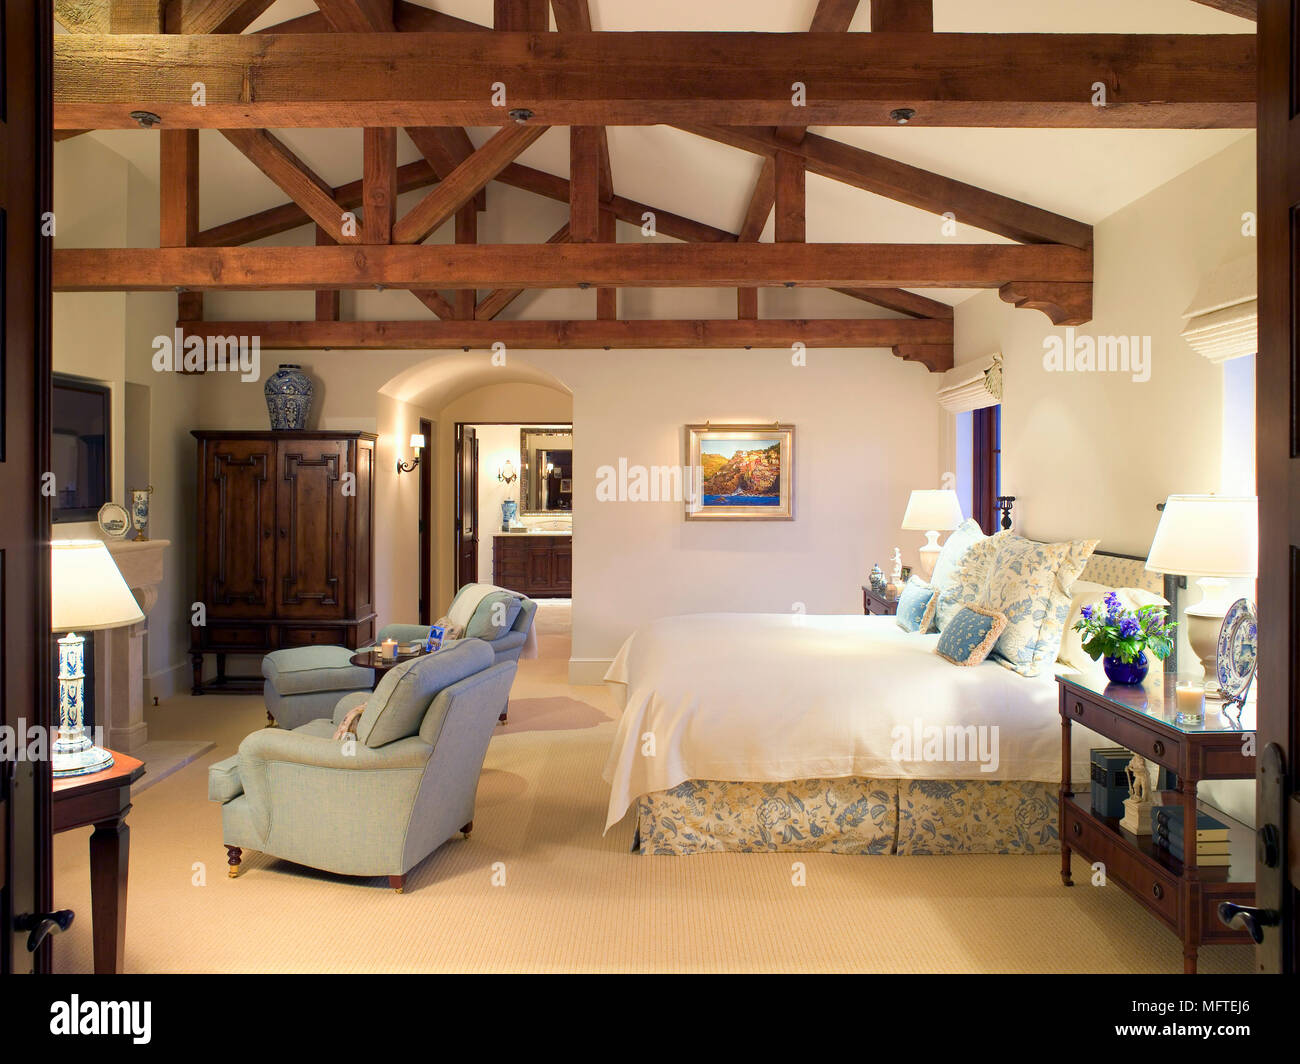 Pair of armchairs at foot of double bed in traditional style bedroom Stock Photo